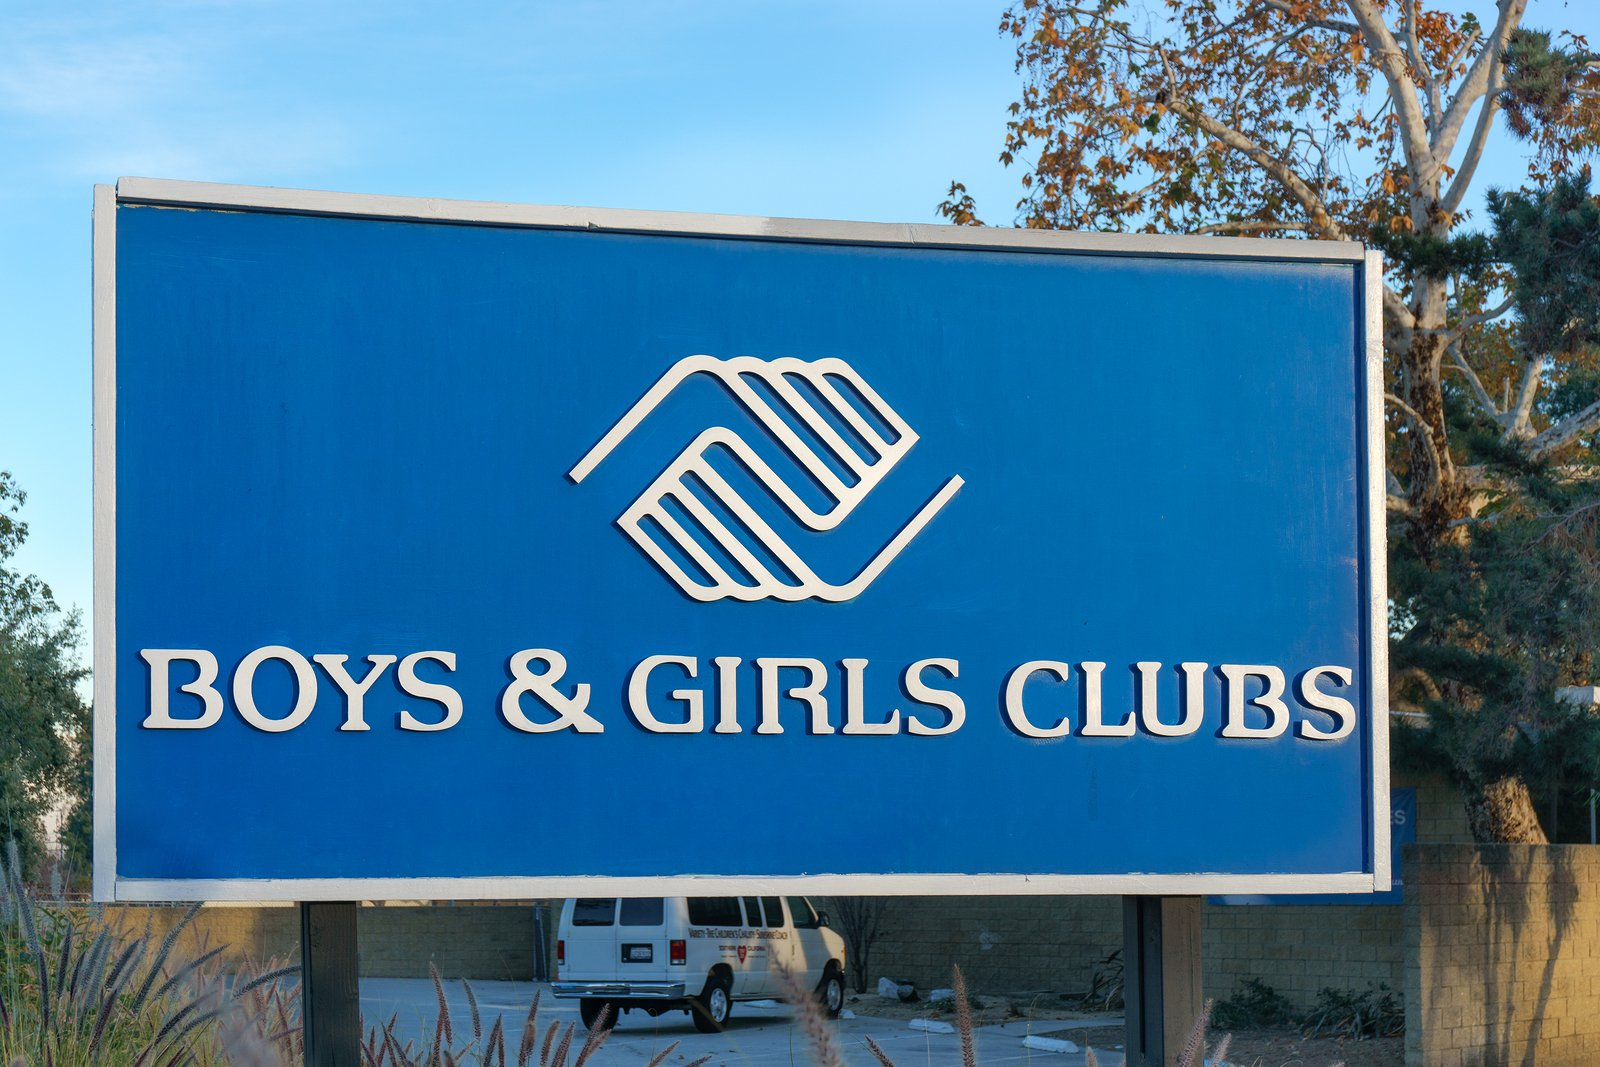 Scam targets local Boys & Girls Clubs